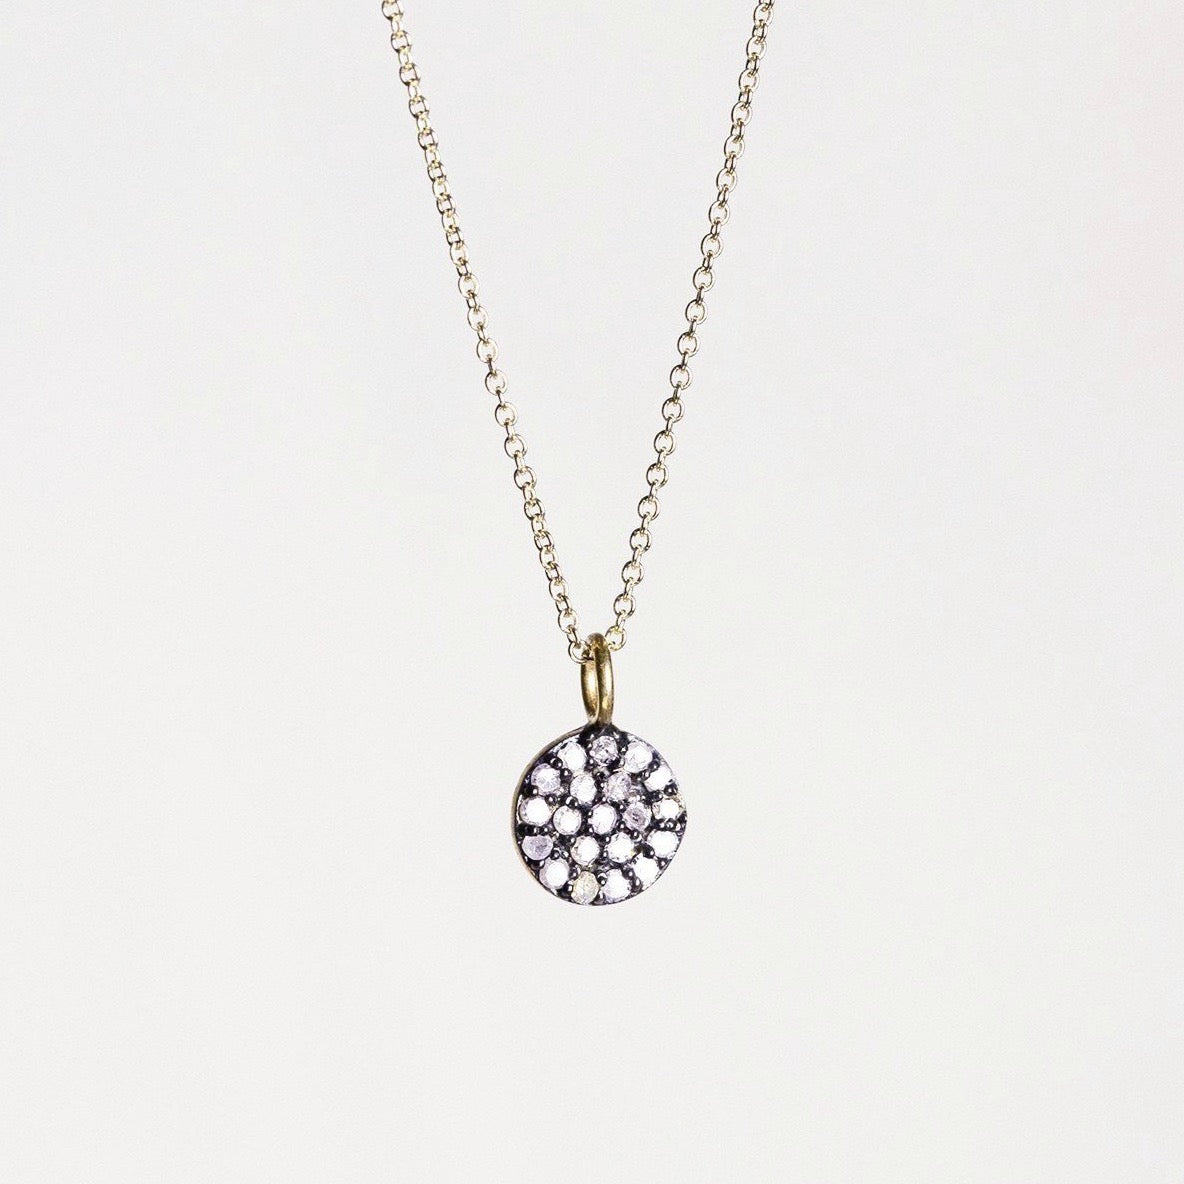 felt Affordable Diamond Range Little Disc Necklace